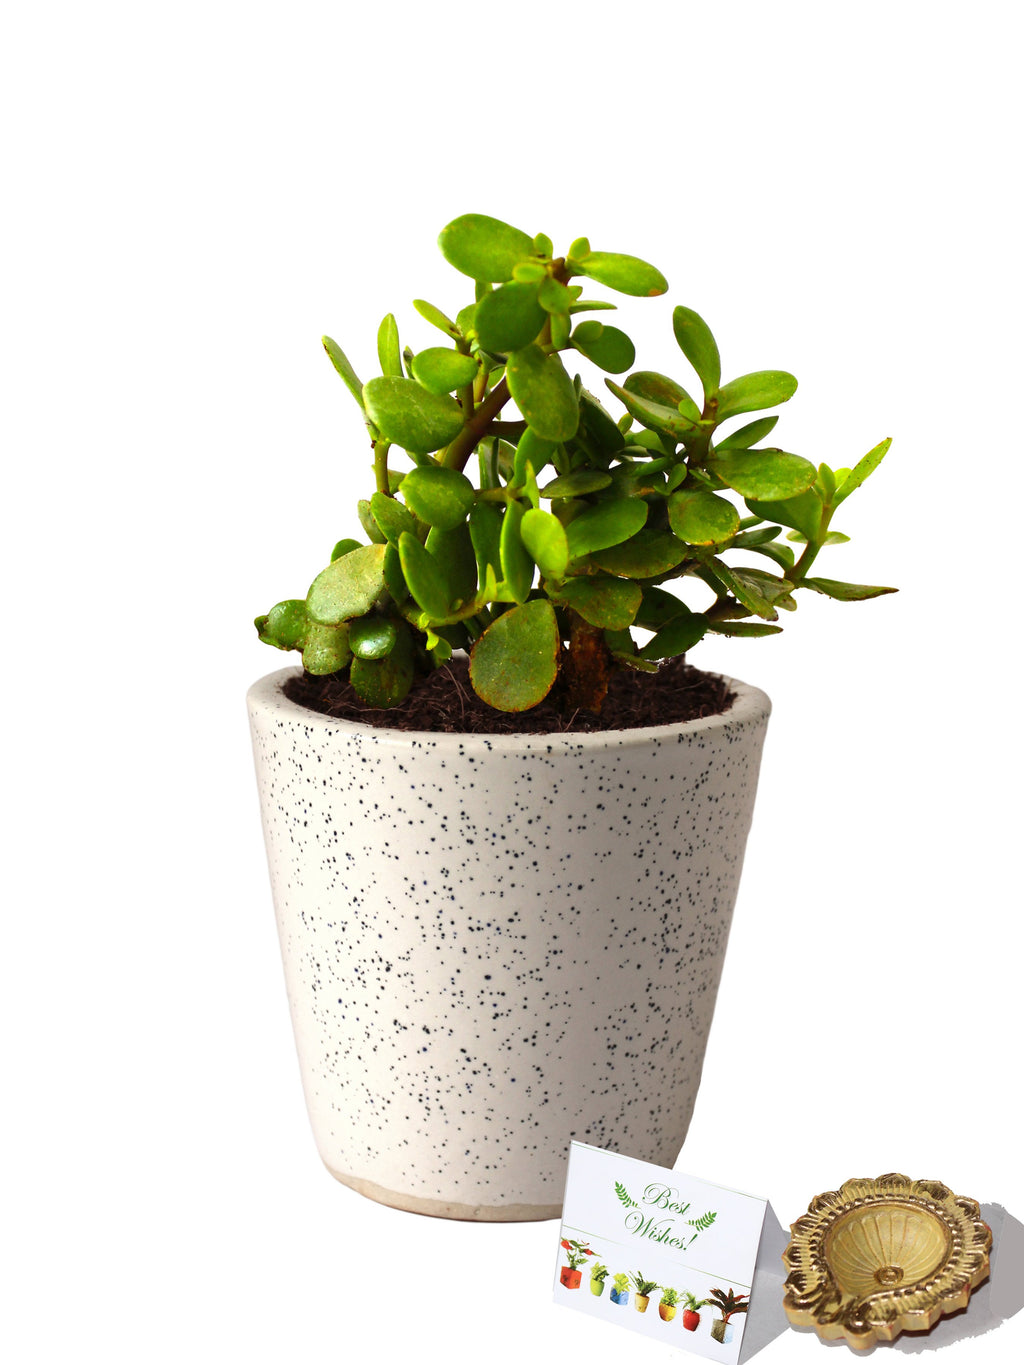 Rolling Nature Diwali Gift Combo of Good Luck Live Jade Plant in White Bucket Dew Ceramic Pot